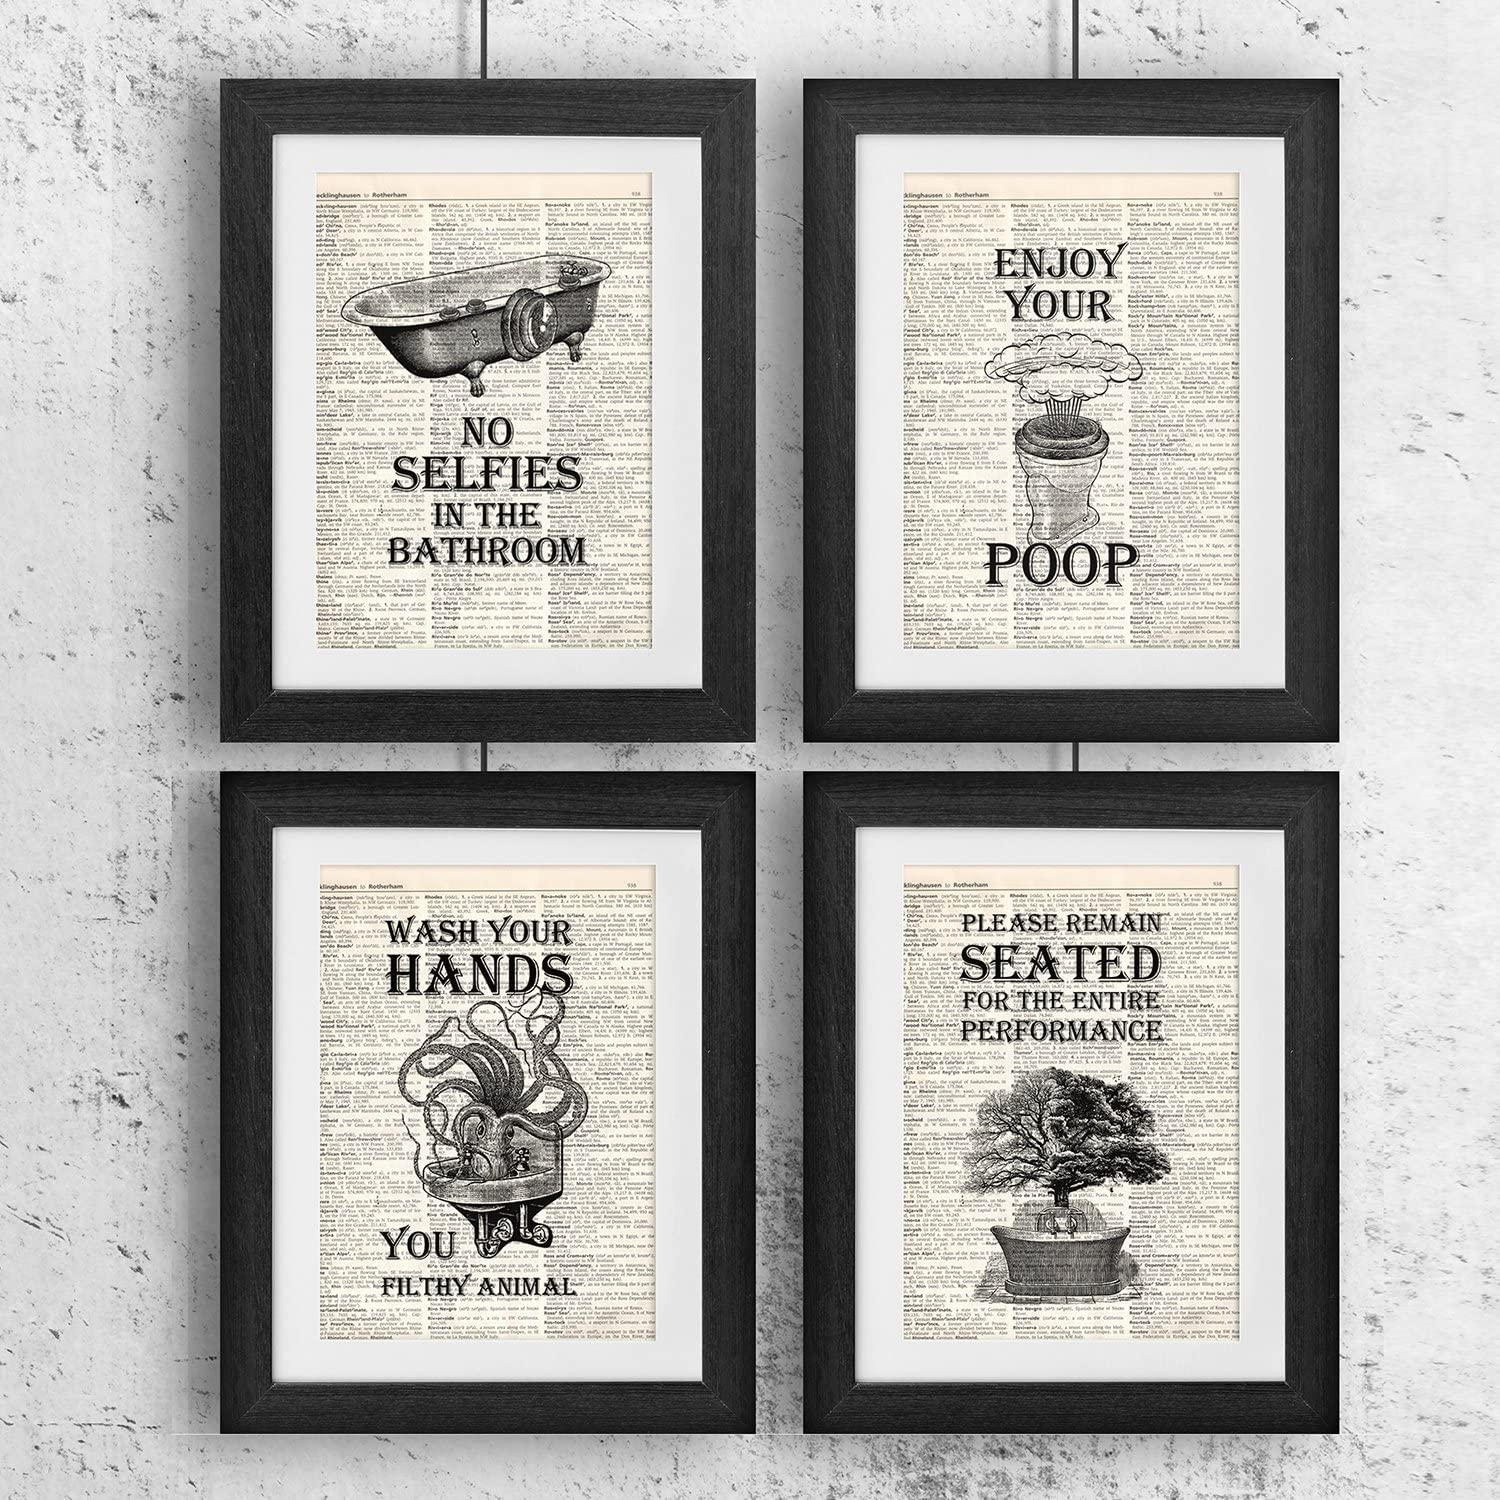 Ihopes Bathroom Quotes And Sayings Vintage Book Art Prints Set Of Four Photos 8x10 Unframed Great Gift For Bathroom Decor Amazon Ca Home Kitchen